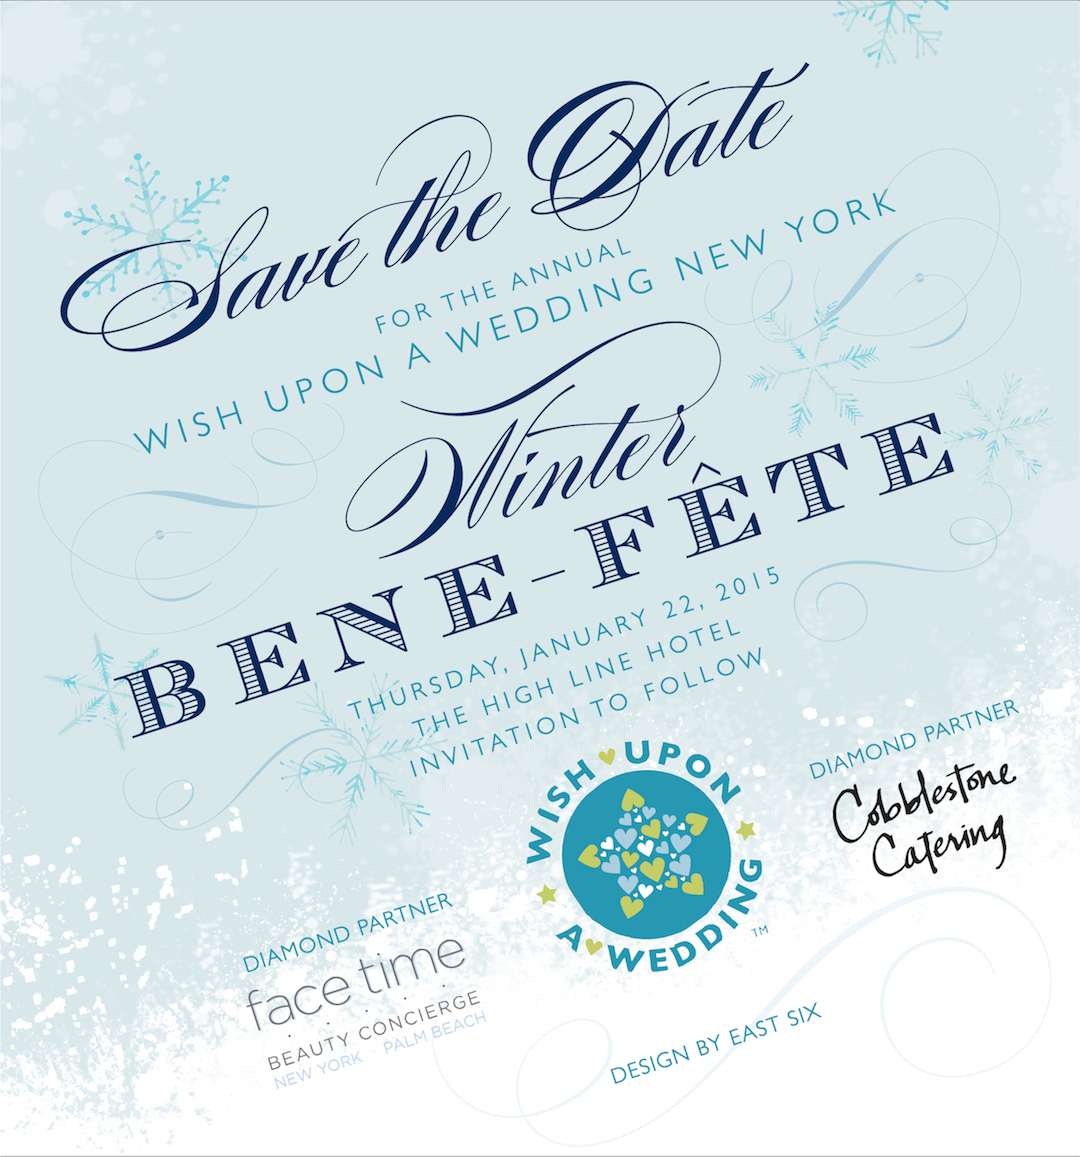 Save the Date for Wish Upon a Wedding New York Winter Bene-Fete